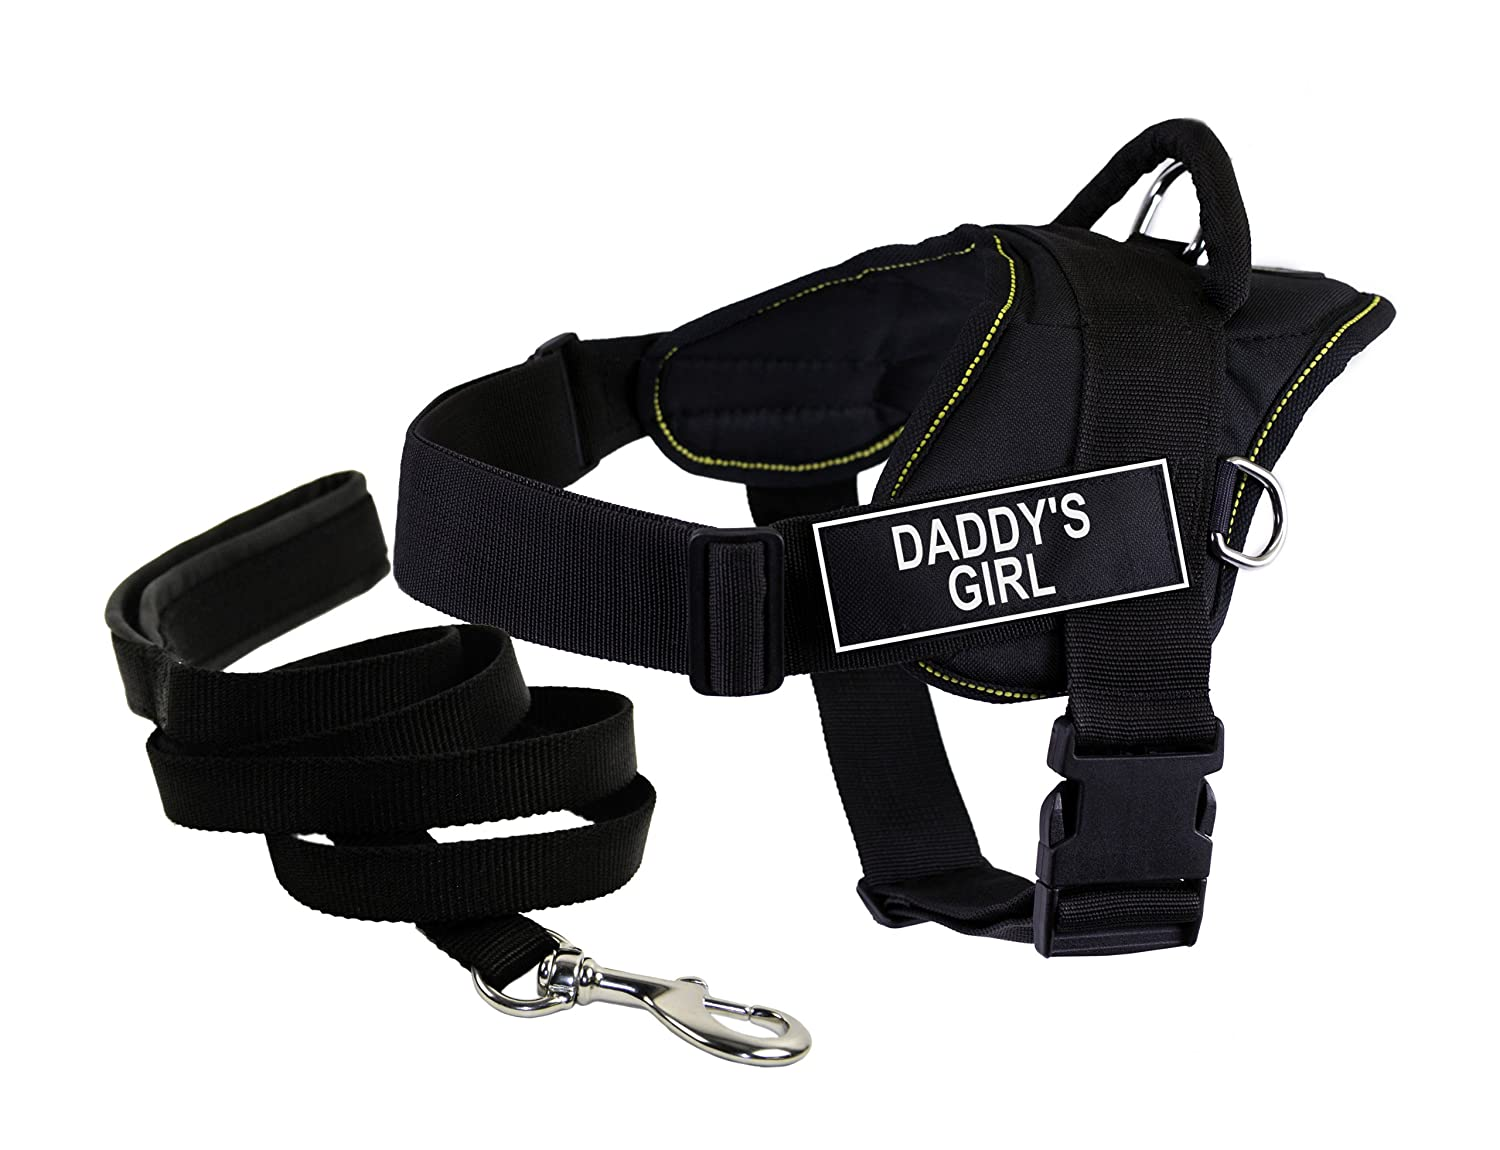 Dean & Tyler's DT Fun Daddy's Girl  Harness, X-Small, with 6 ft Padded Puppy Leash.